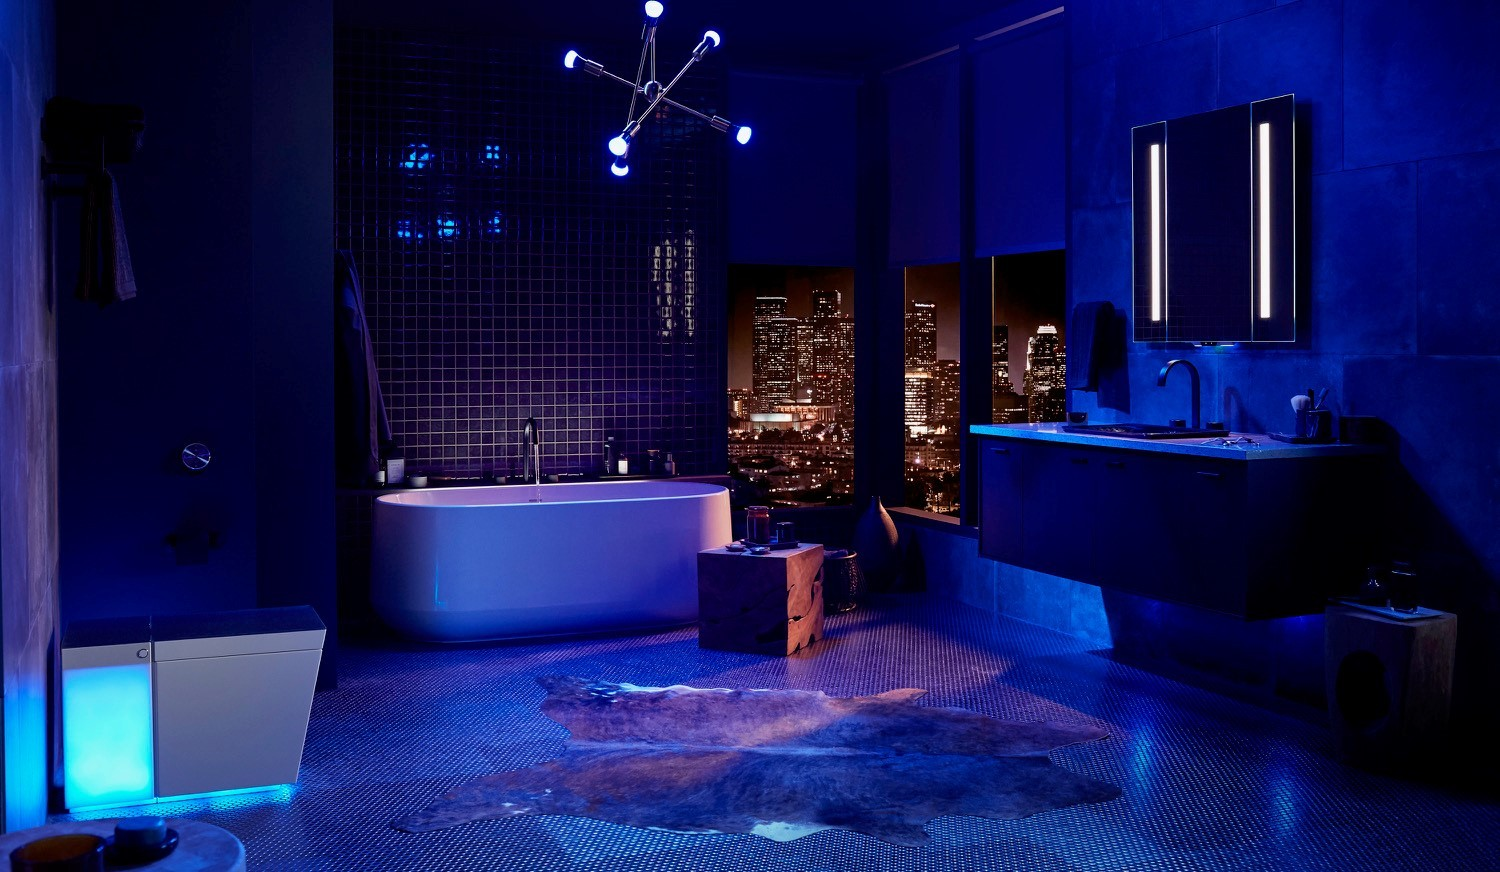 Kohler unveils updated smart toilet, mirror, and other voice